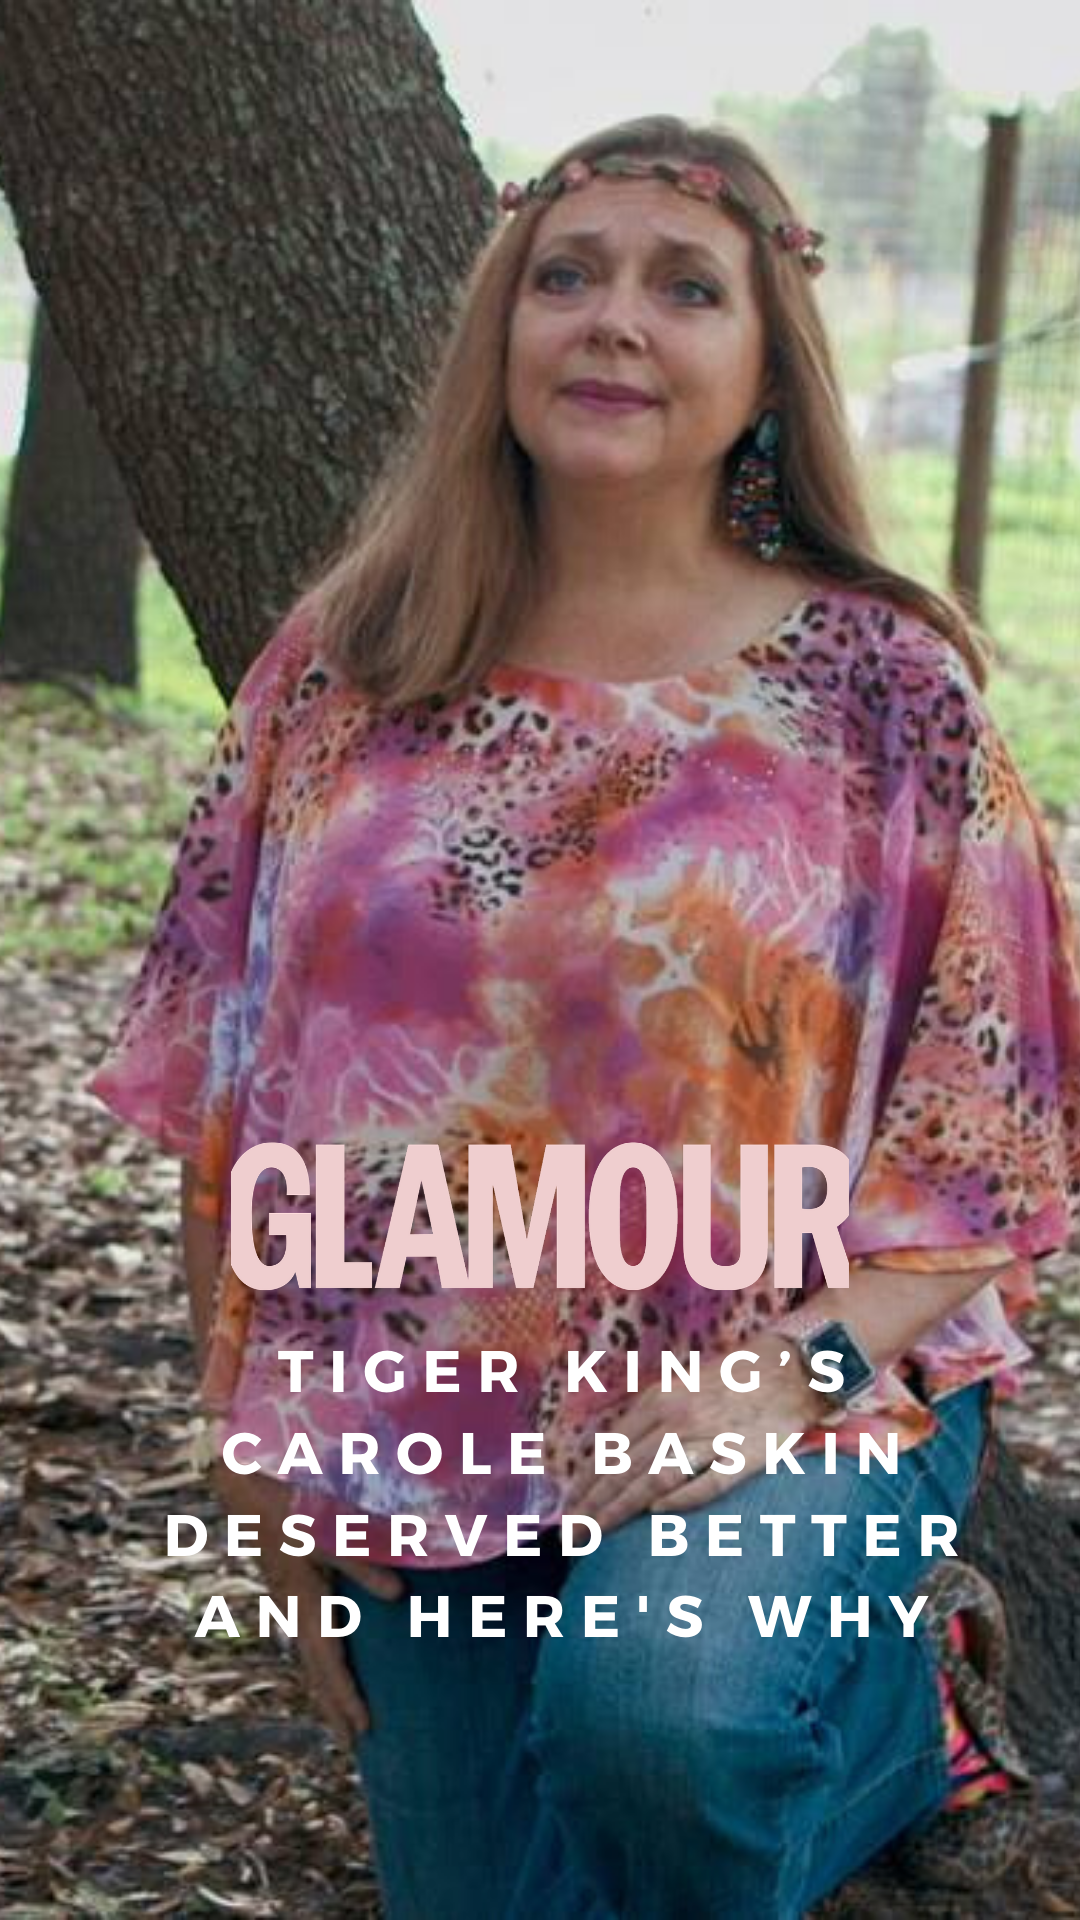 Tiger King's Carole Baskin deserved better and here's why